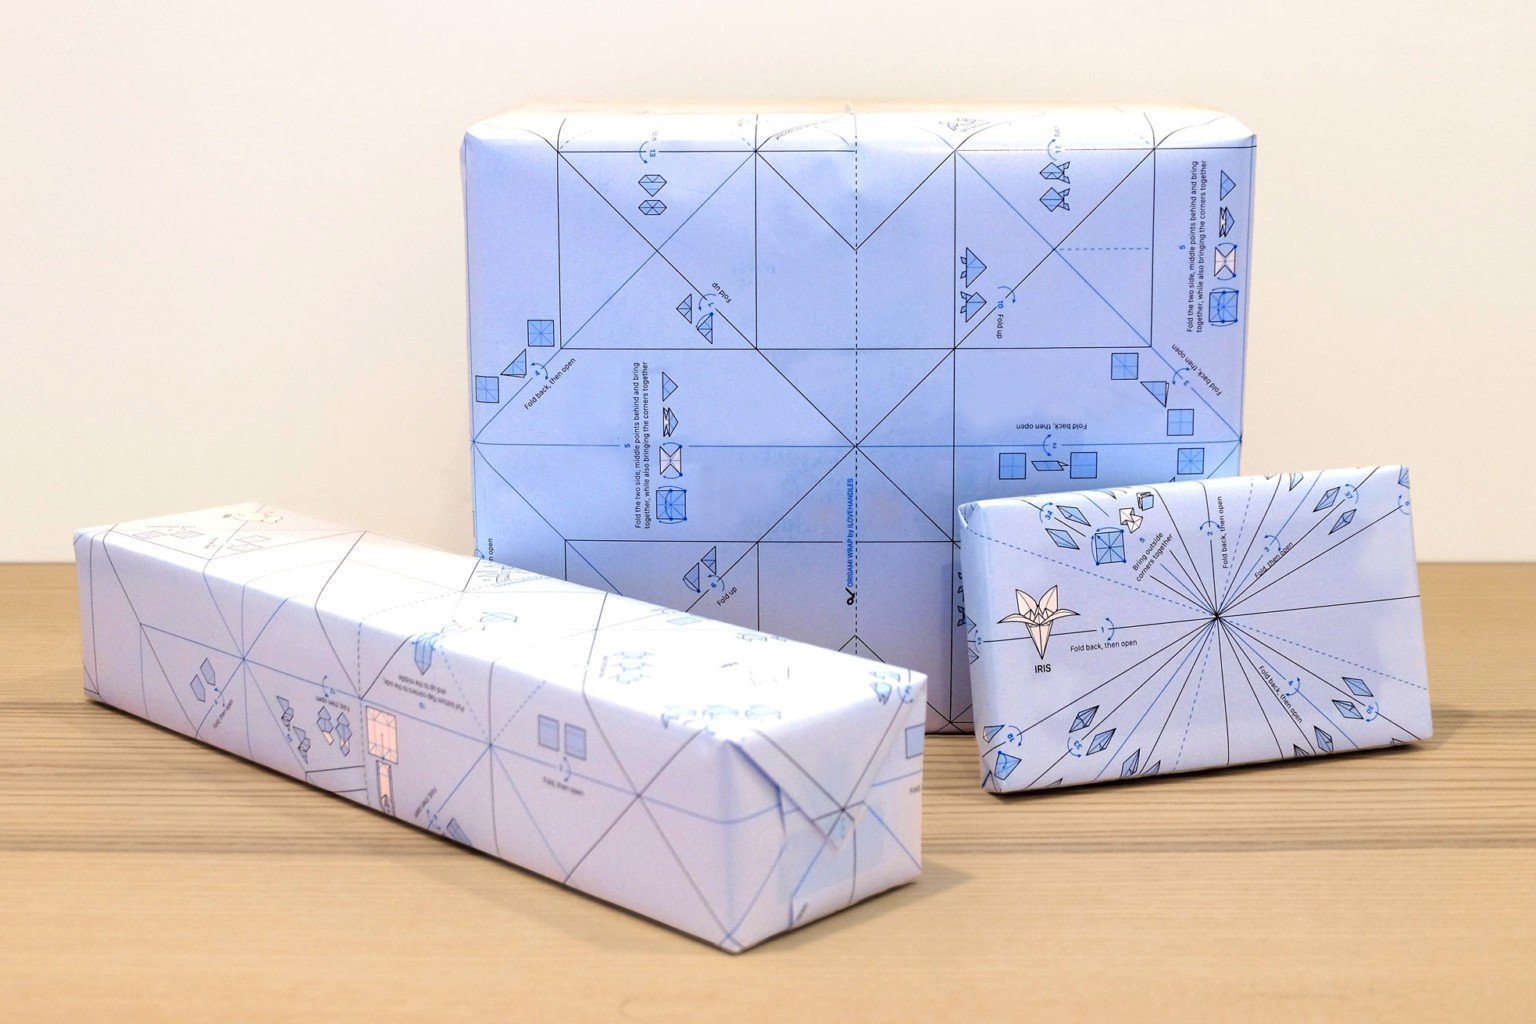 Origami Wrap Turns Disposable Gift-Wrapping Paper Into DIY Crafts